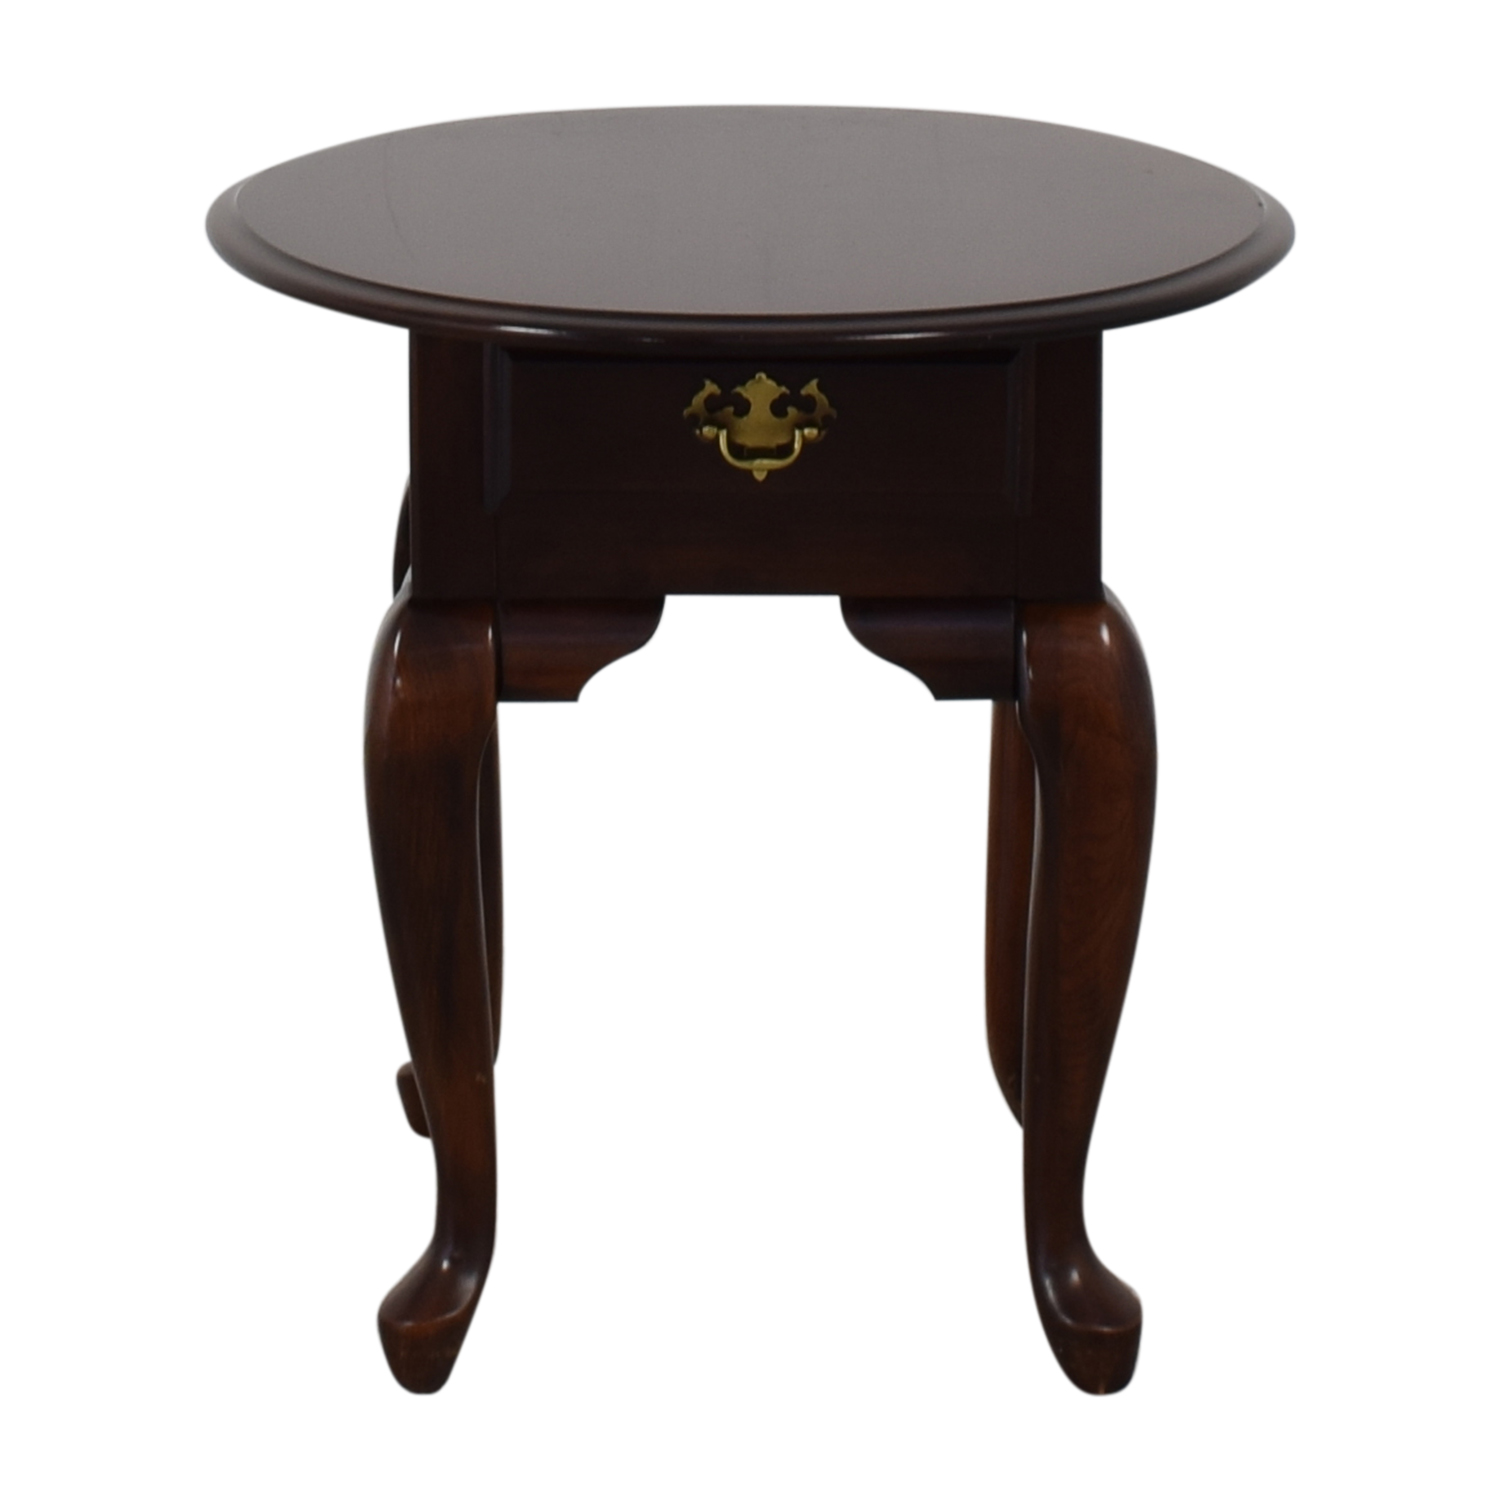 Thomasville Thomasville End Table price